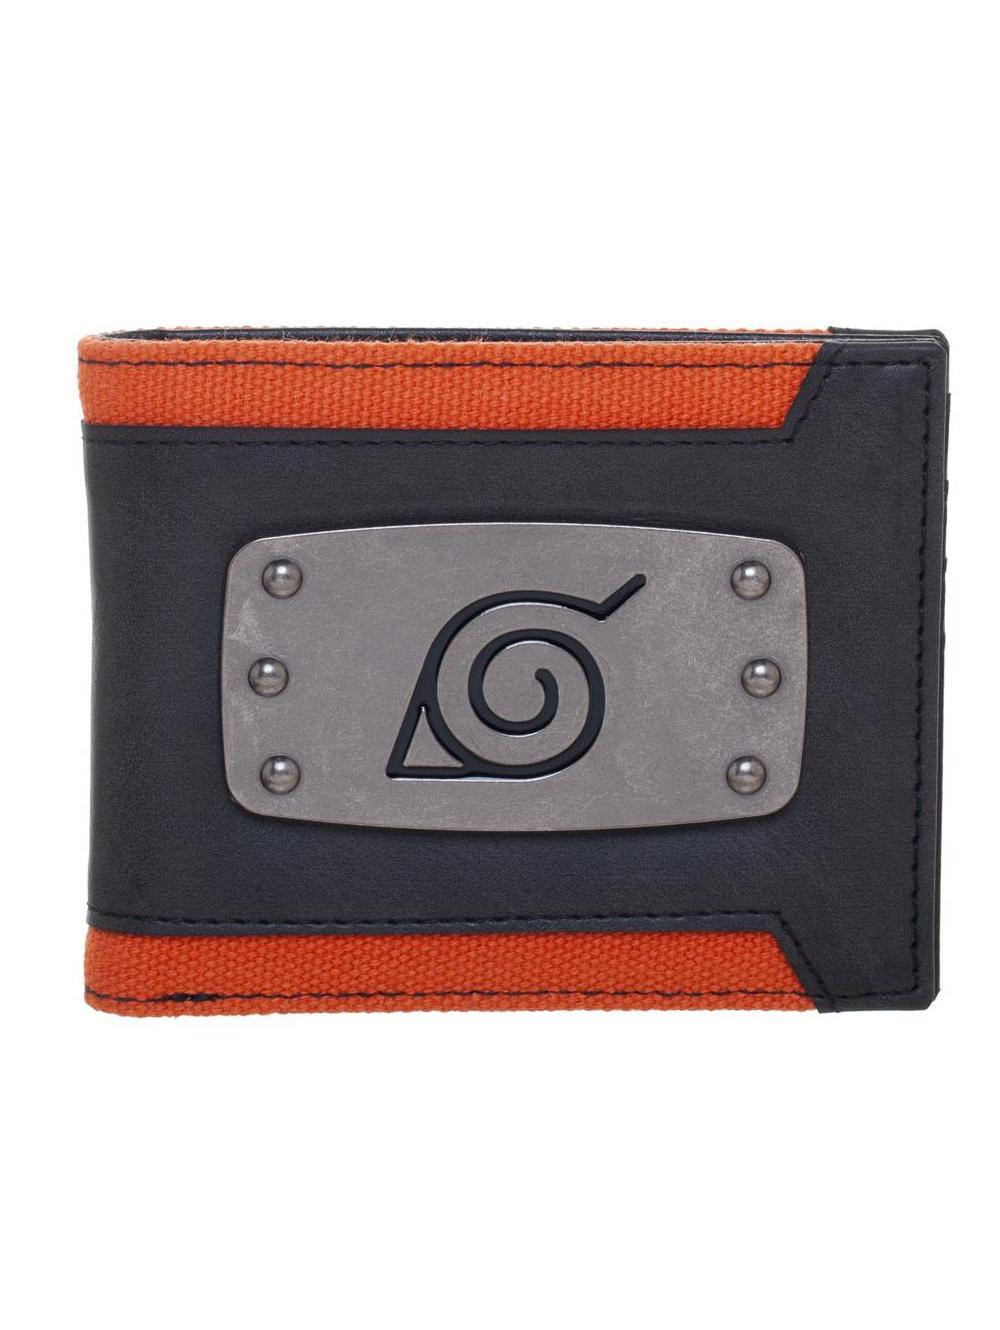 NARUTO SHIPPUDEN - Hero Collection Bifold Wallet